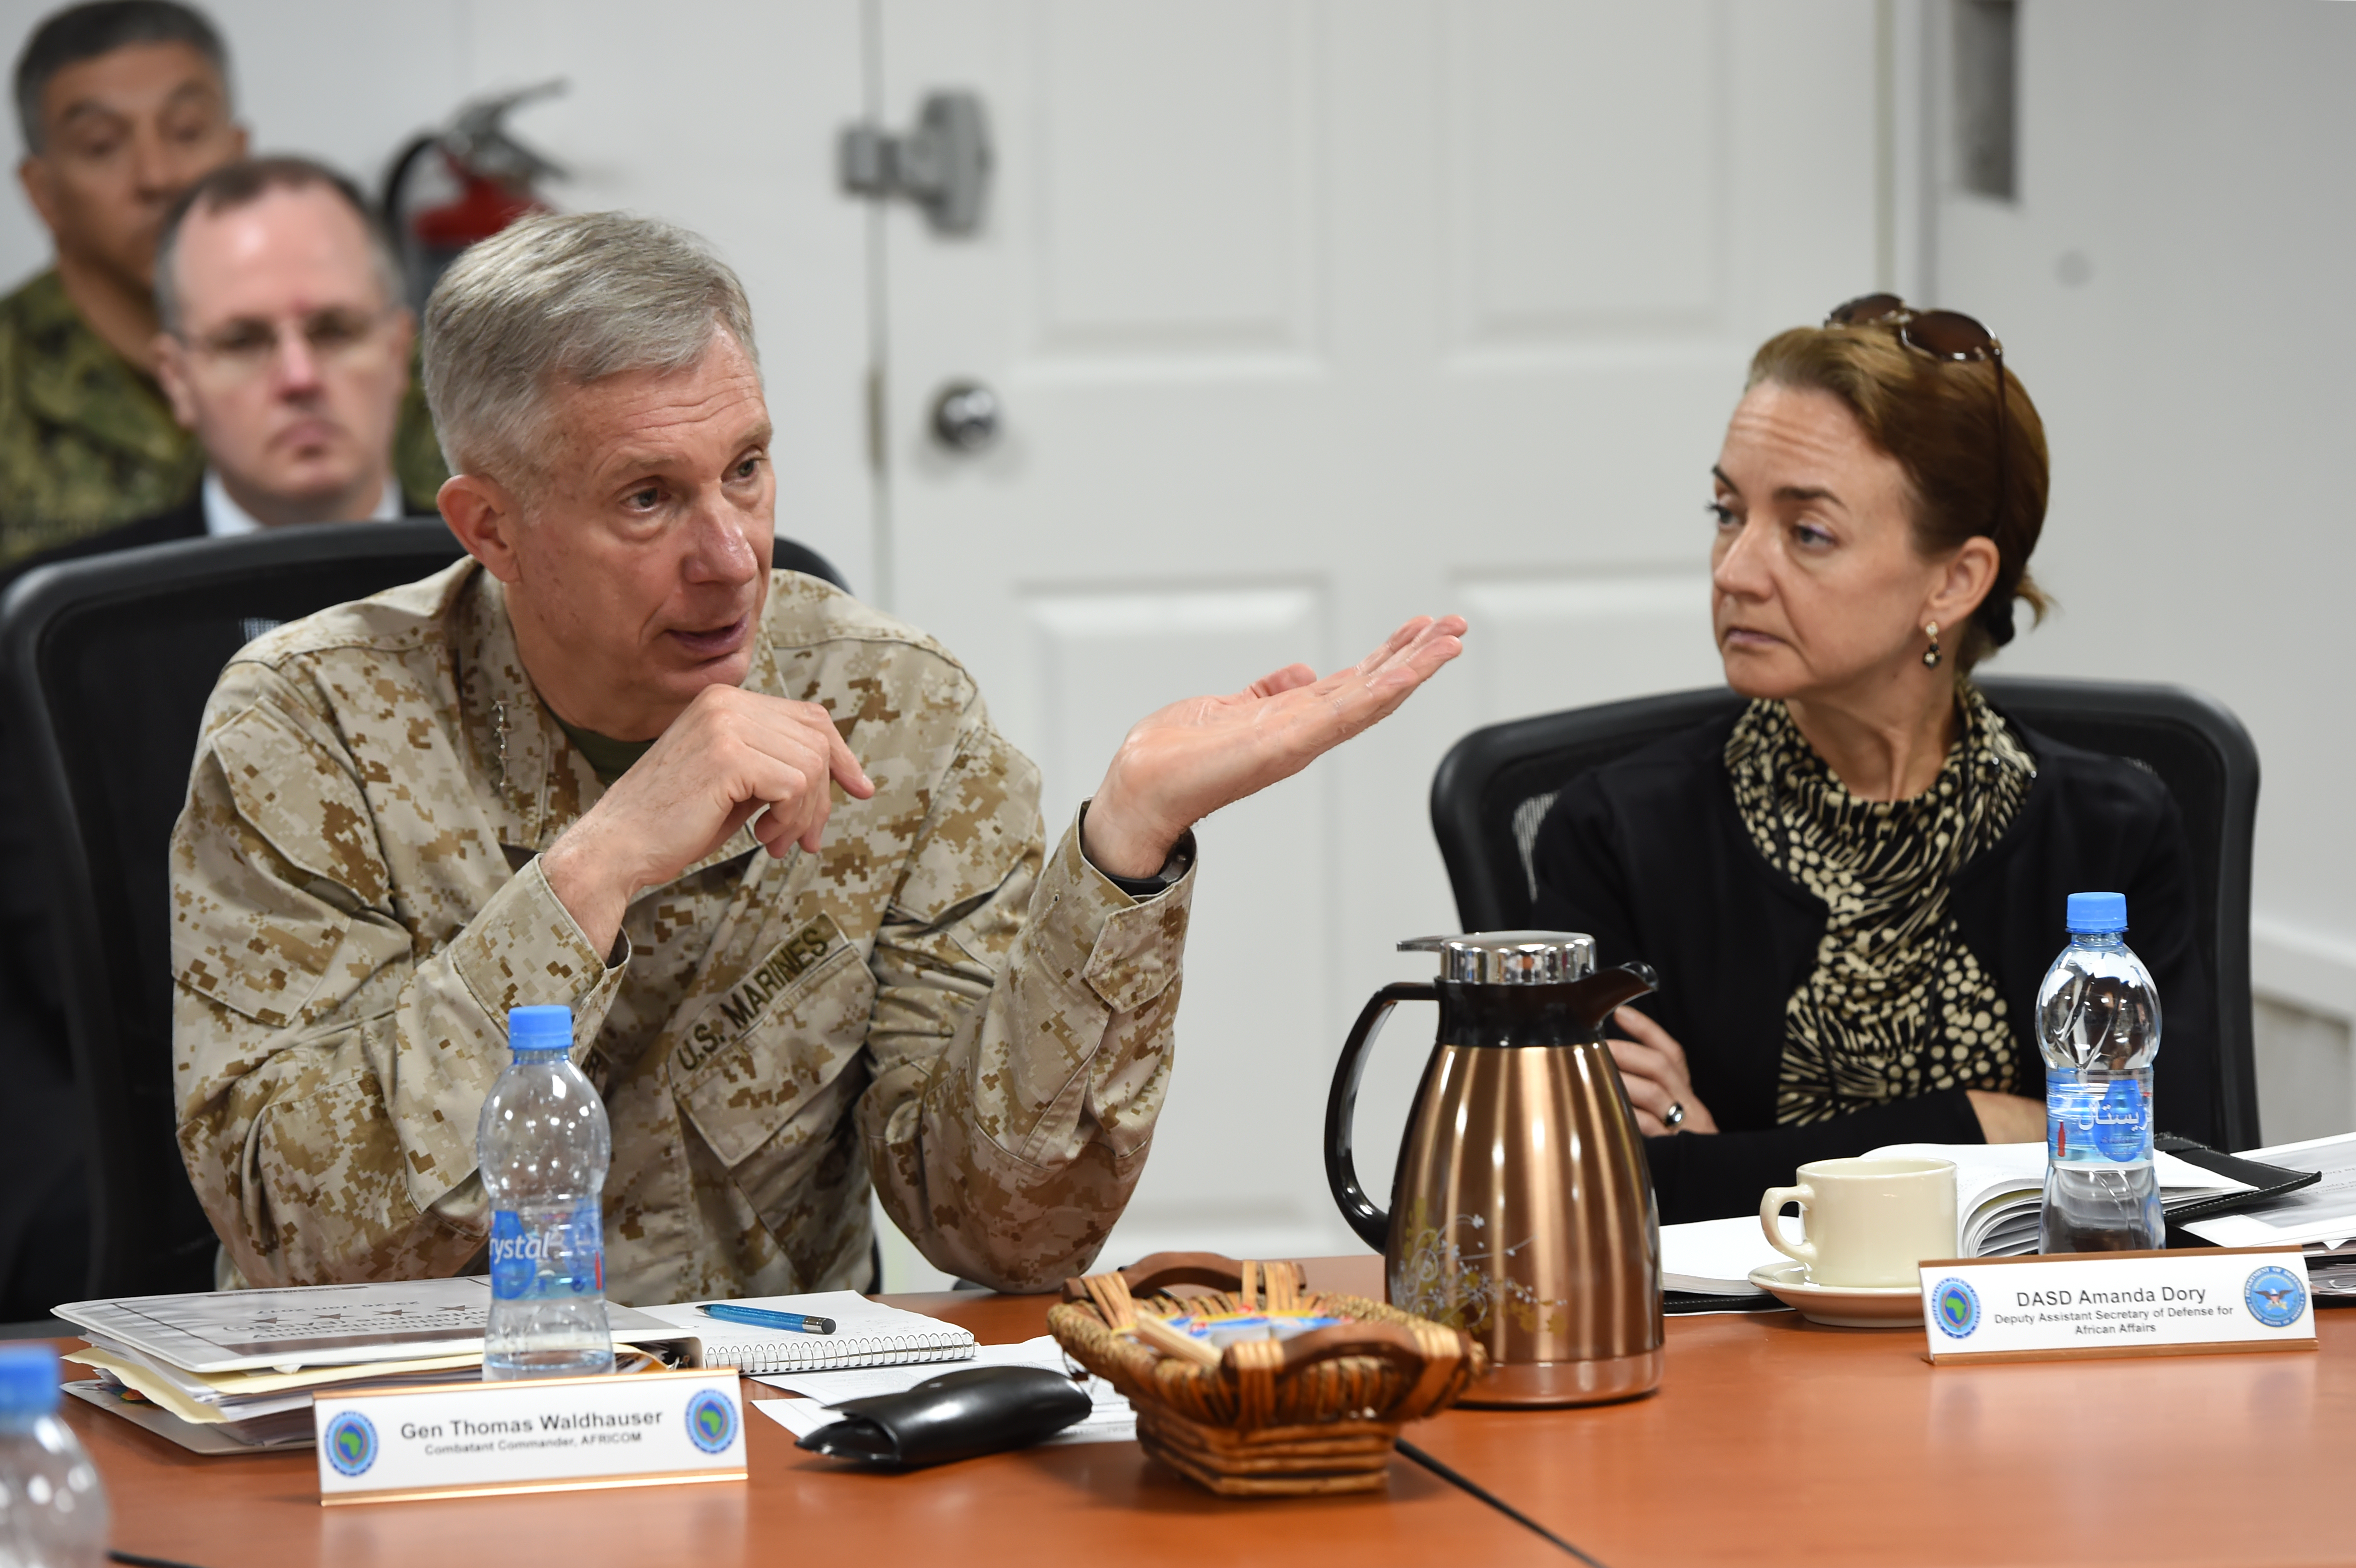 Gen. Thomas Waldhauser, commander of U.S. Africa Command, addresses attendees of the 2017 East Africa Security Synchronization Conference at Camp Lemonnier, Djibouti, Jan. 24. The two-day event allowed U.S. Embassy representatives from eight East African nations to engage with AFRICOM leadership, and provided the opportunity for an open dialogue to discuss the security environments of each country. (U.S. Air National Guard photo by Master Sgt. Paul Gorman/Released)